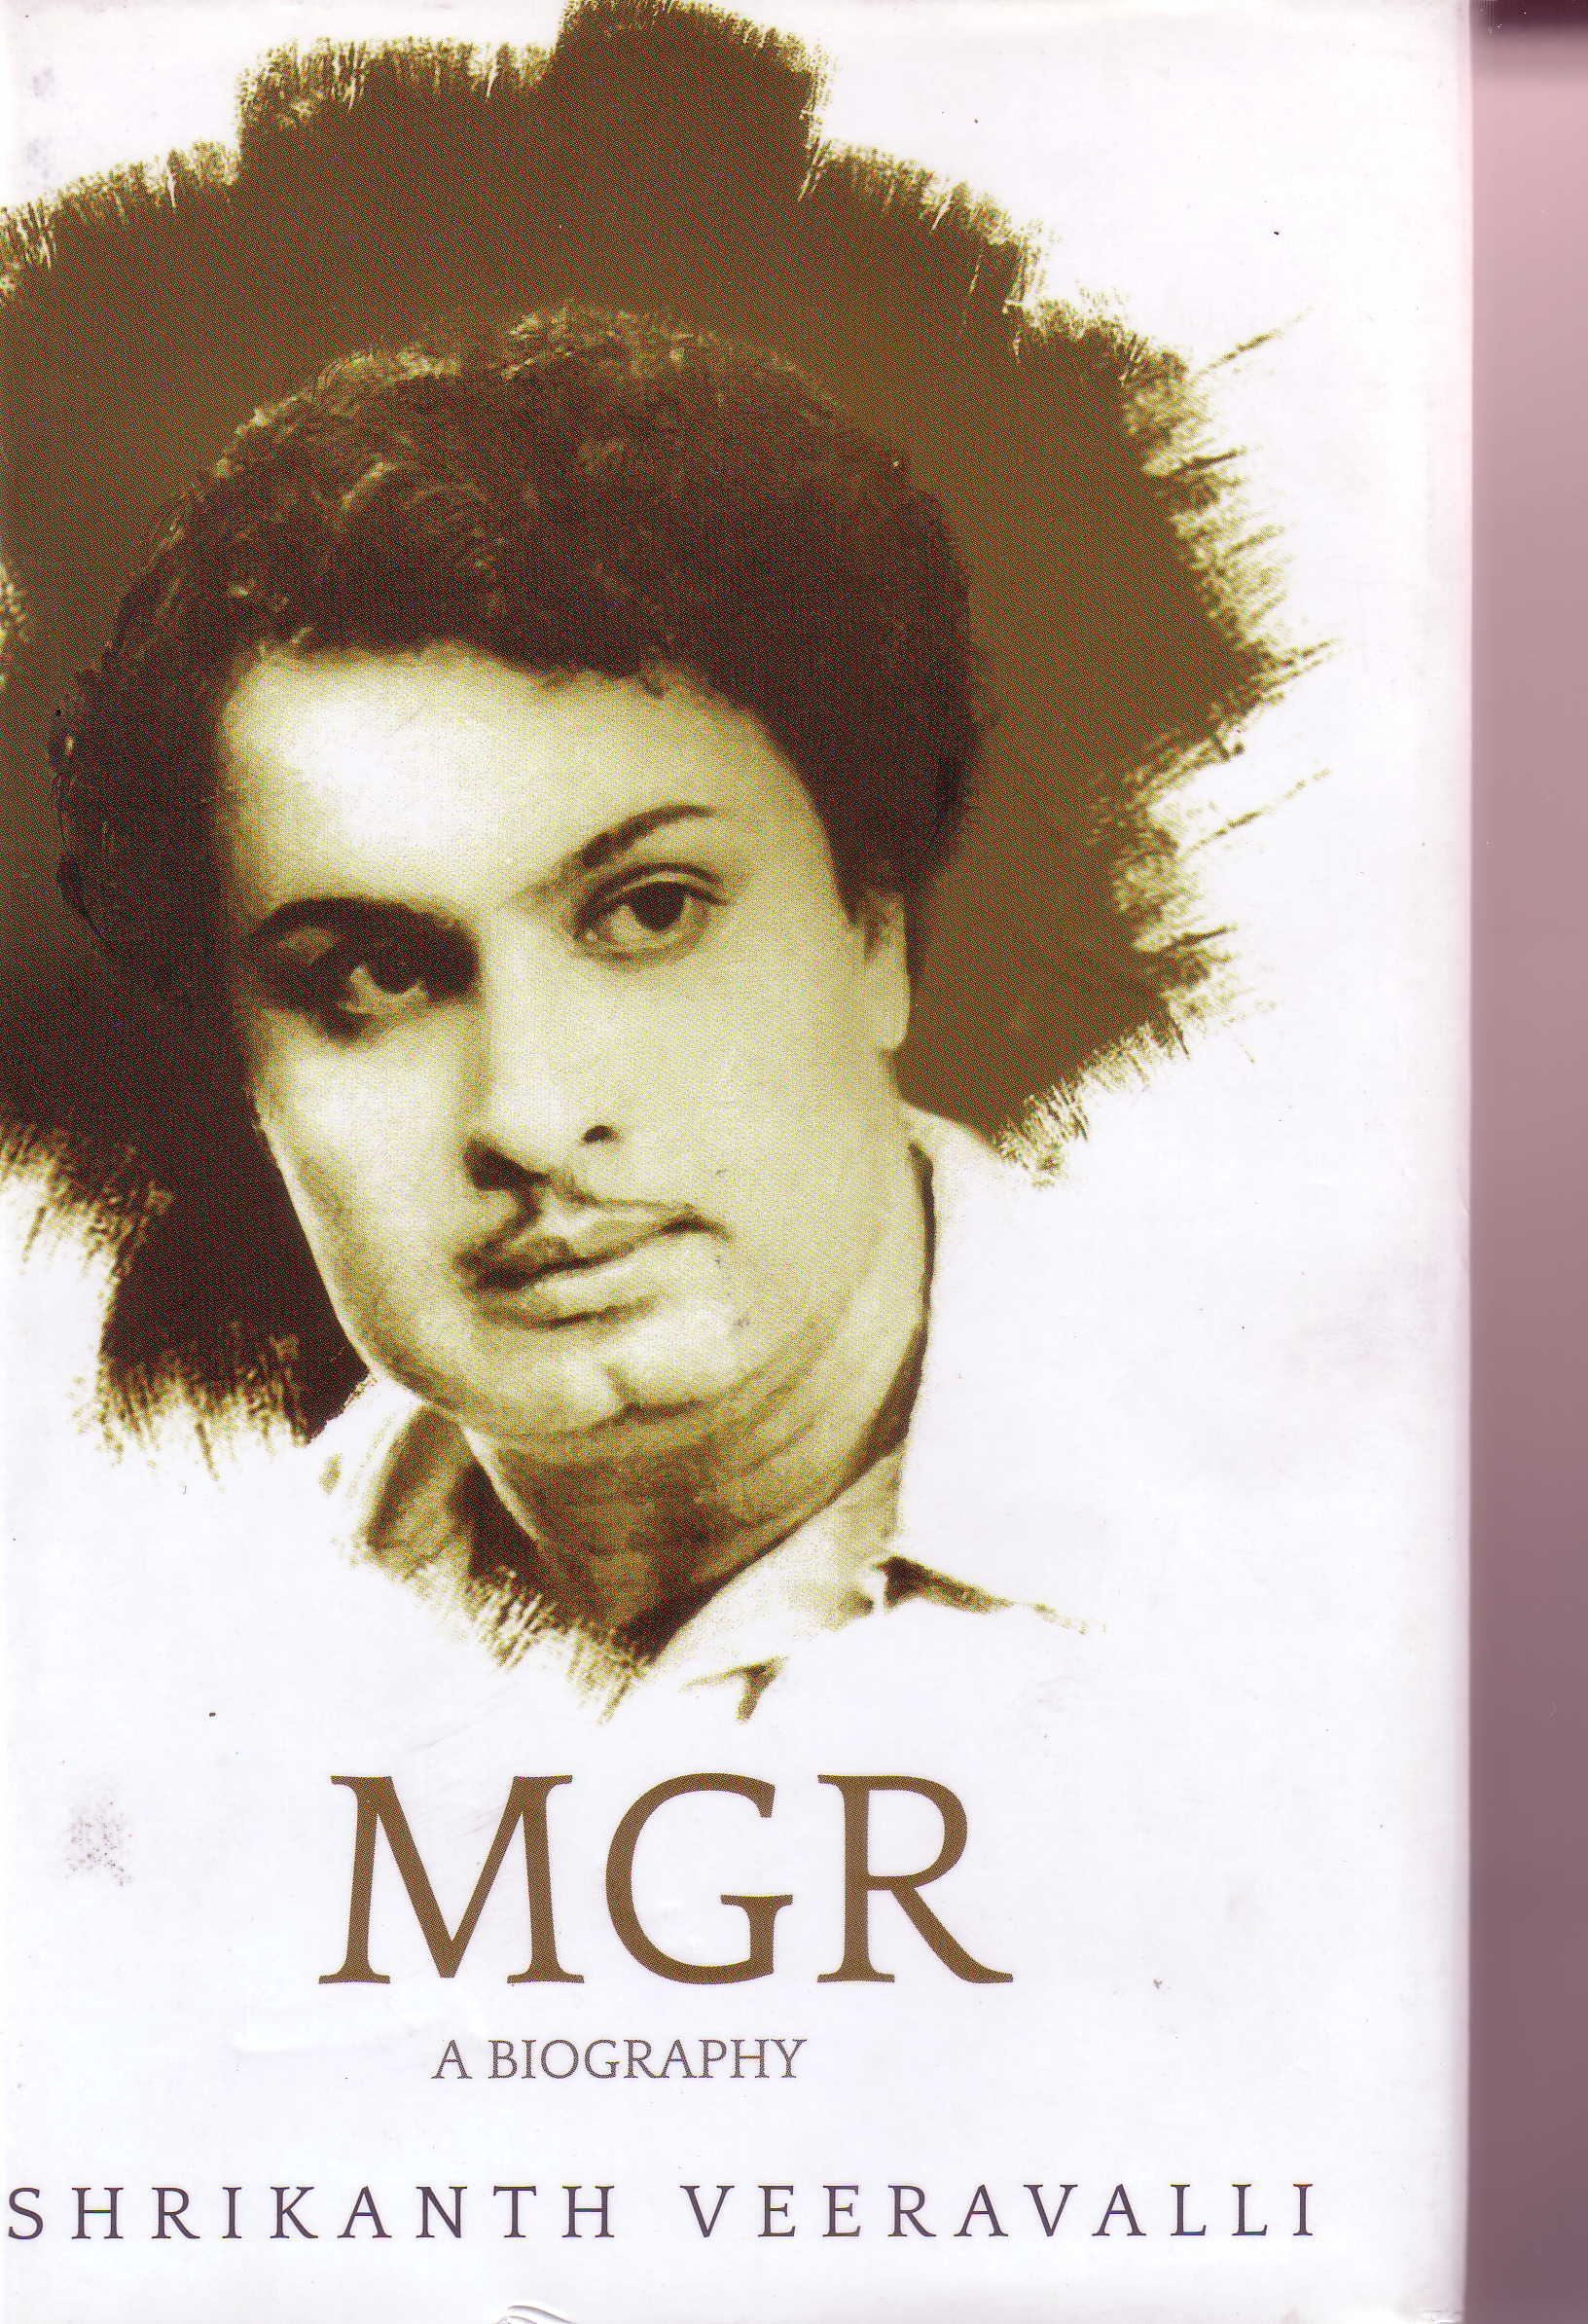 Shrikanth Veeravalli book cover MGR a biography